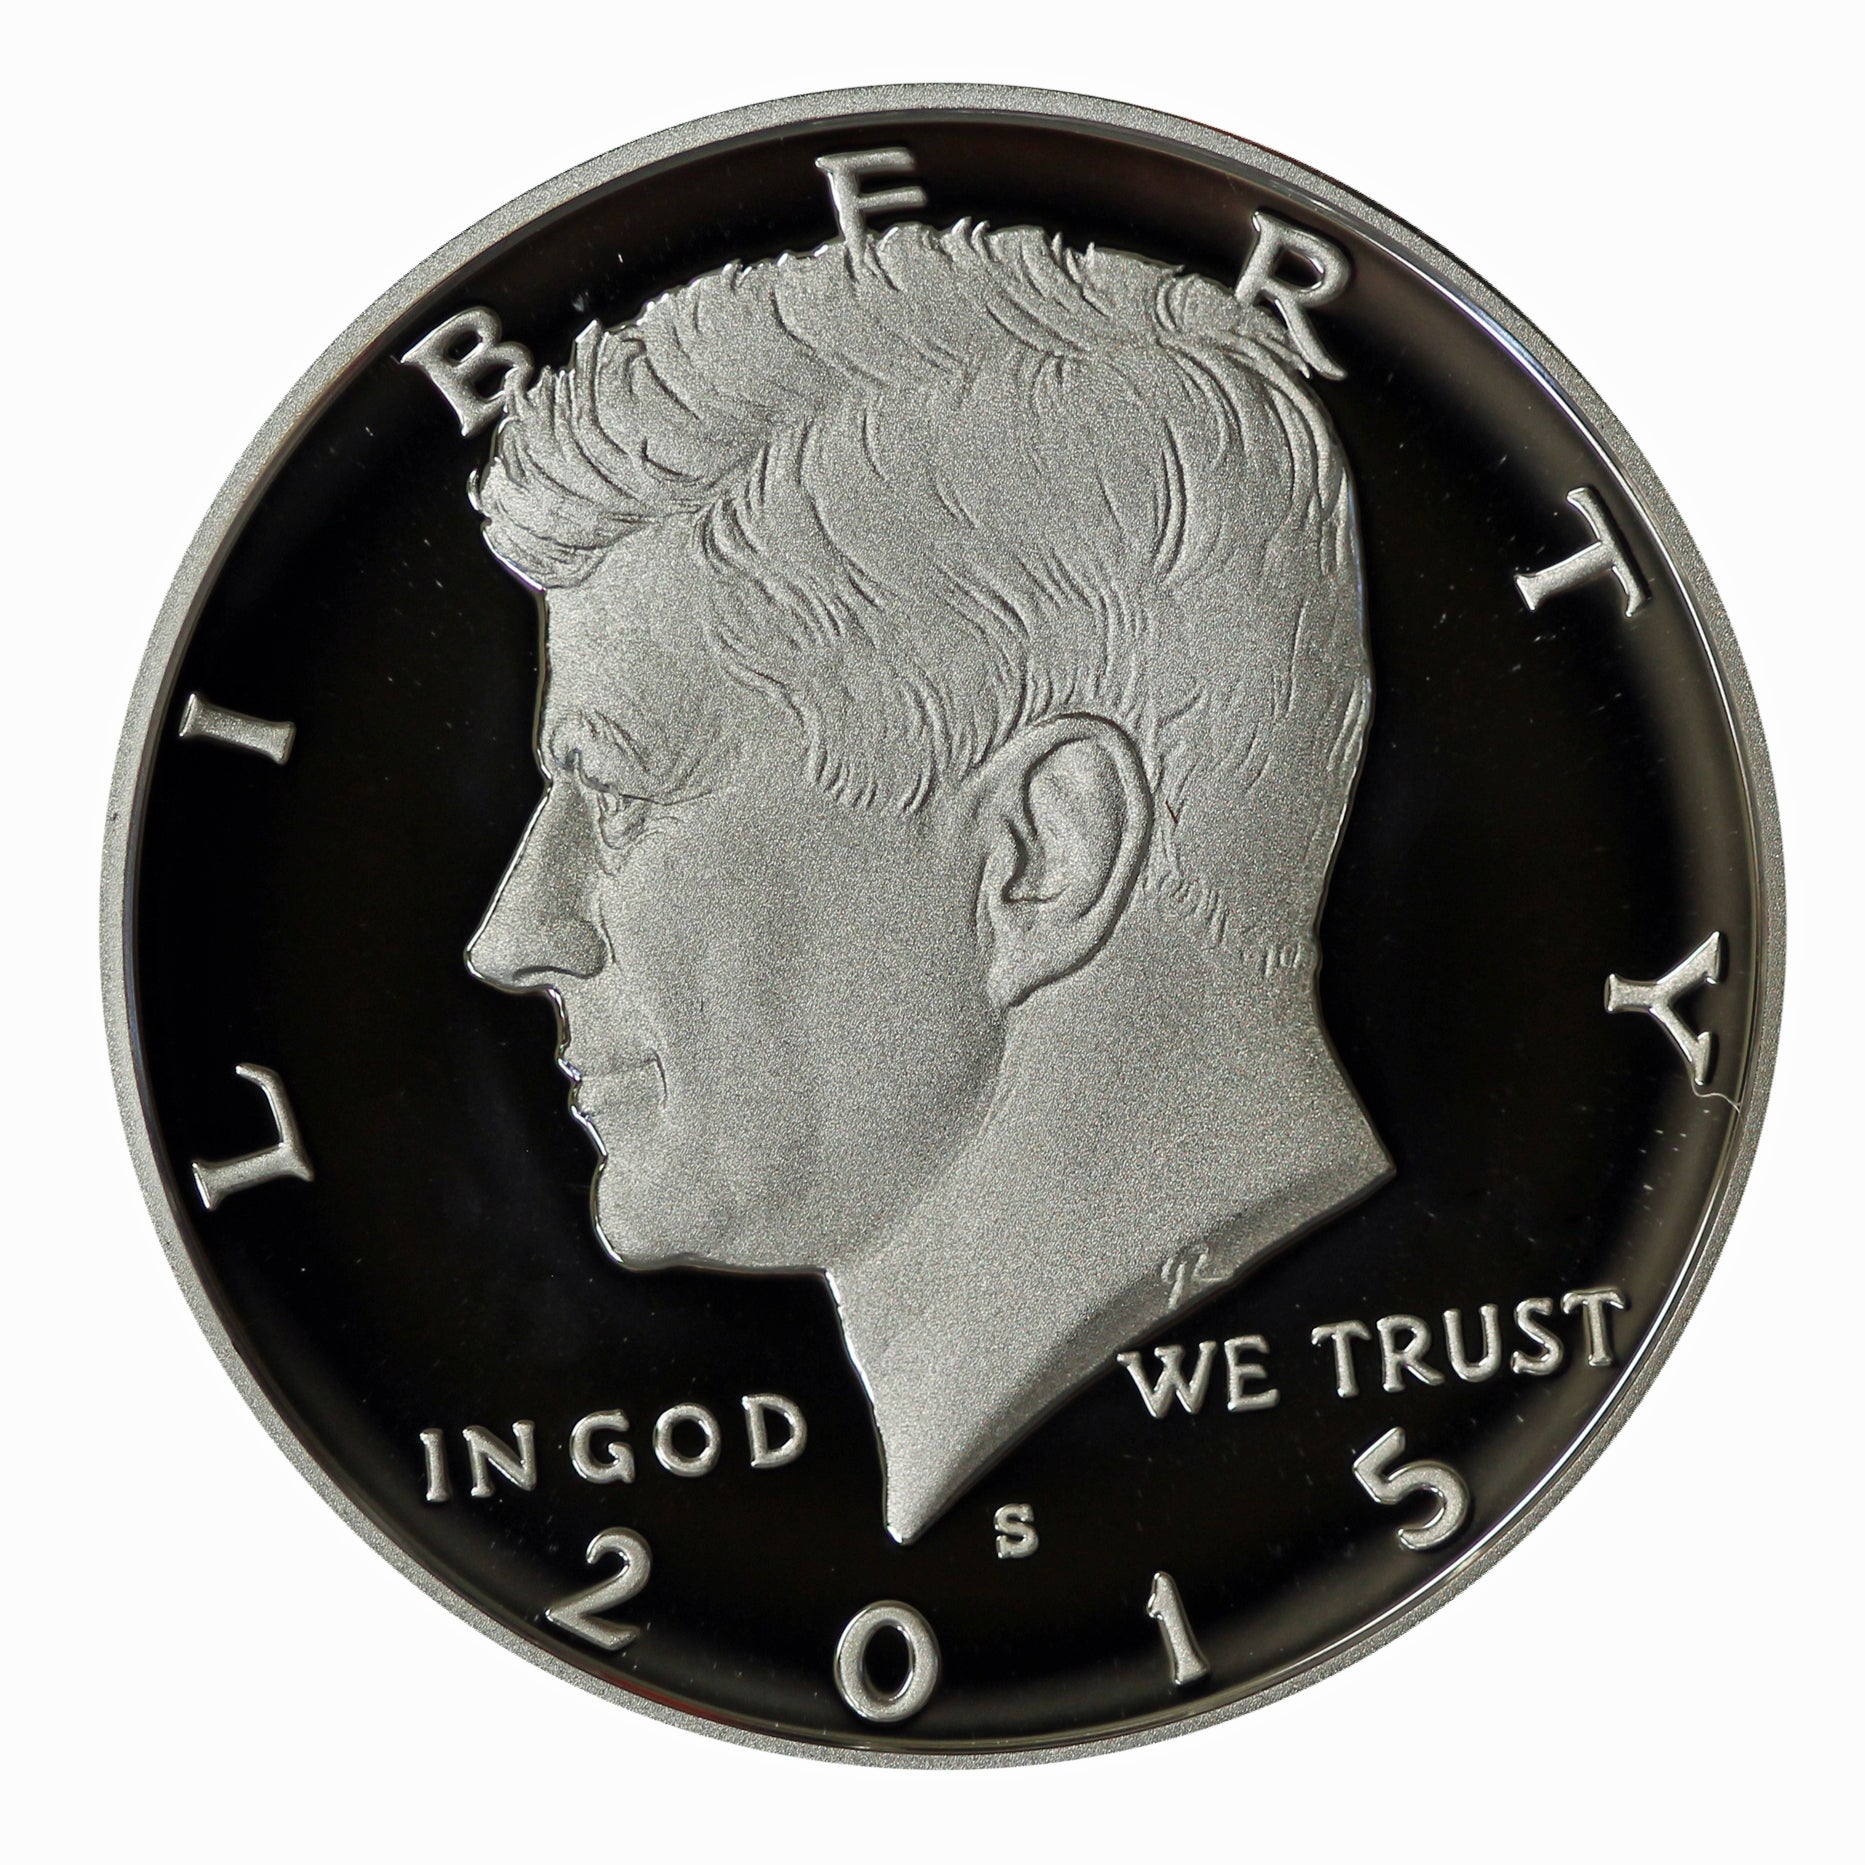 2015 S Kennedy Half Dollar CN-Clad Proof